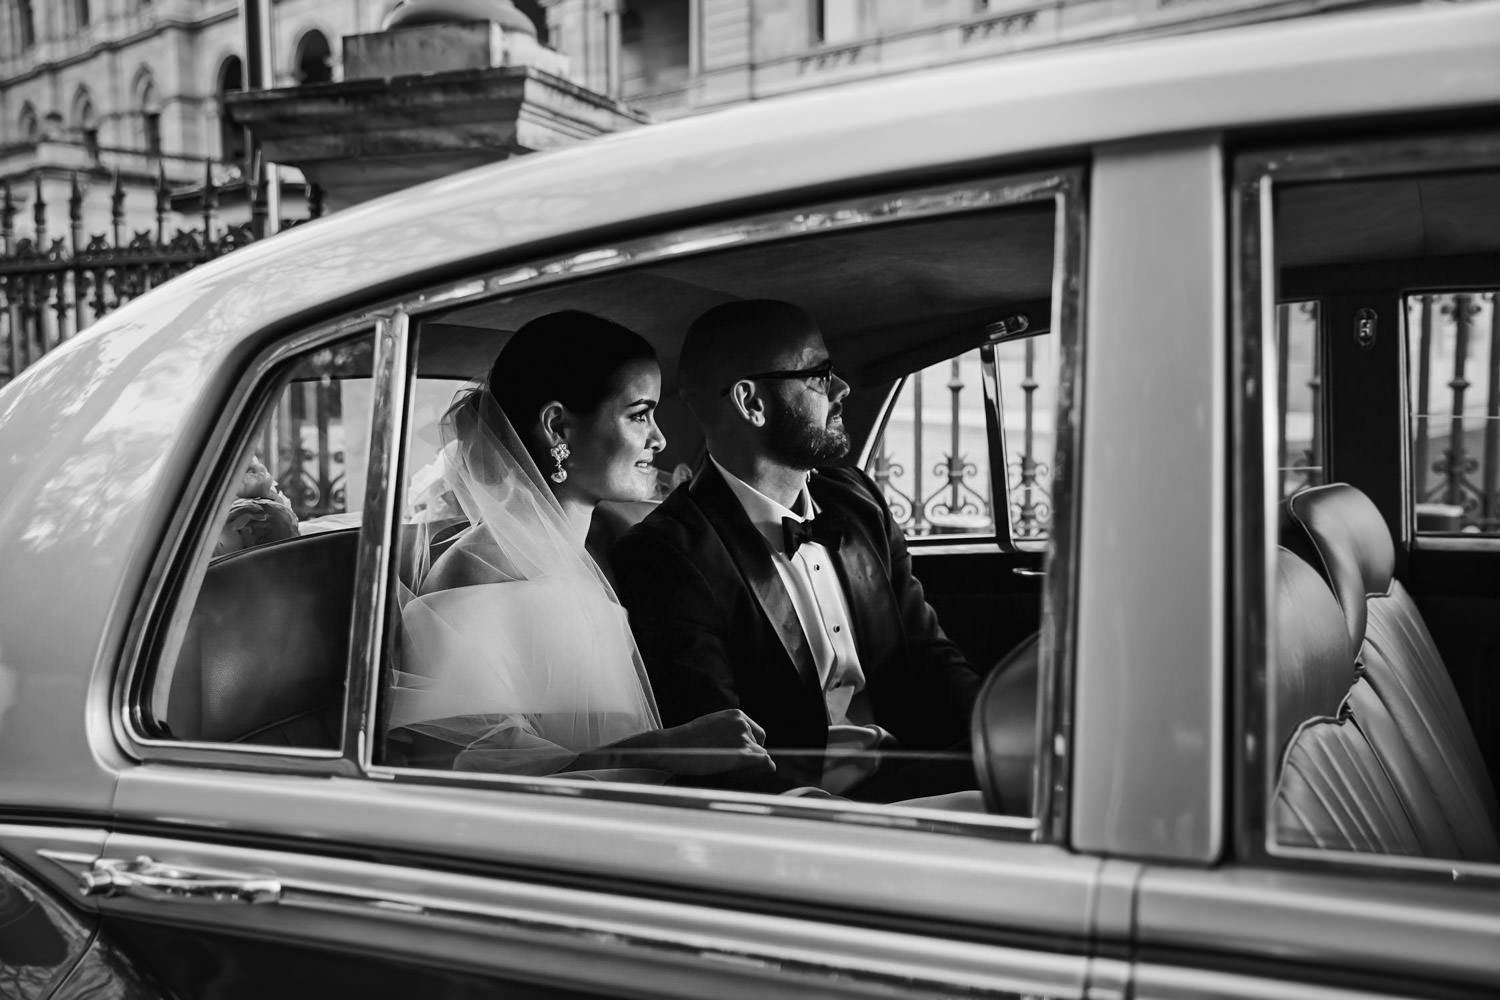 editorial-natural, fun, romantic-wedding-photography-Black-tie-tattersalls-QuinceandMulberryStudios